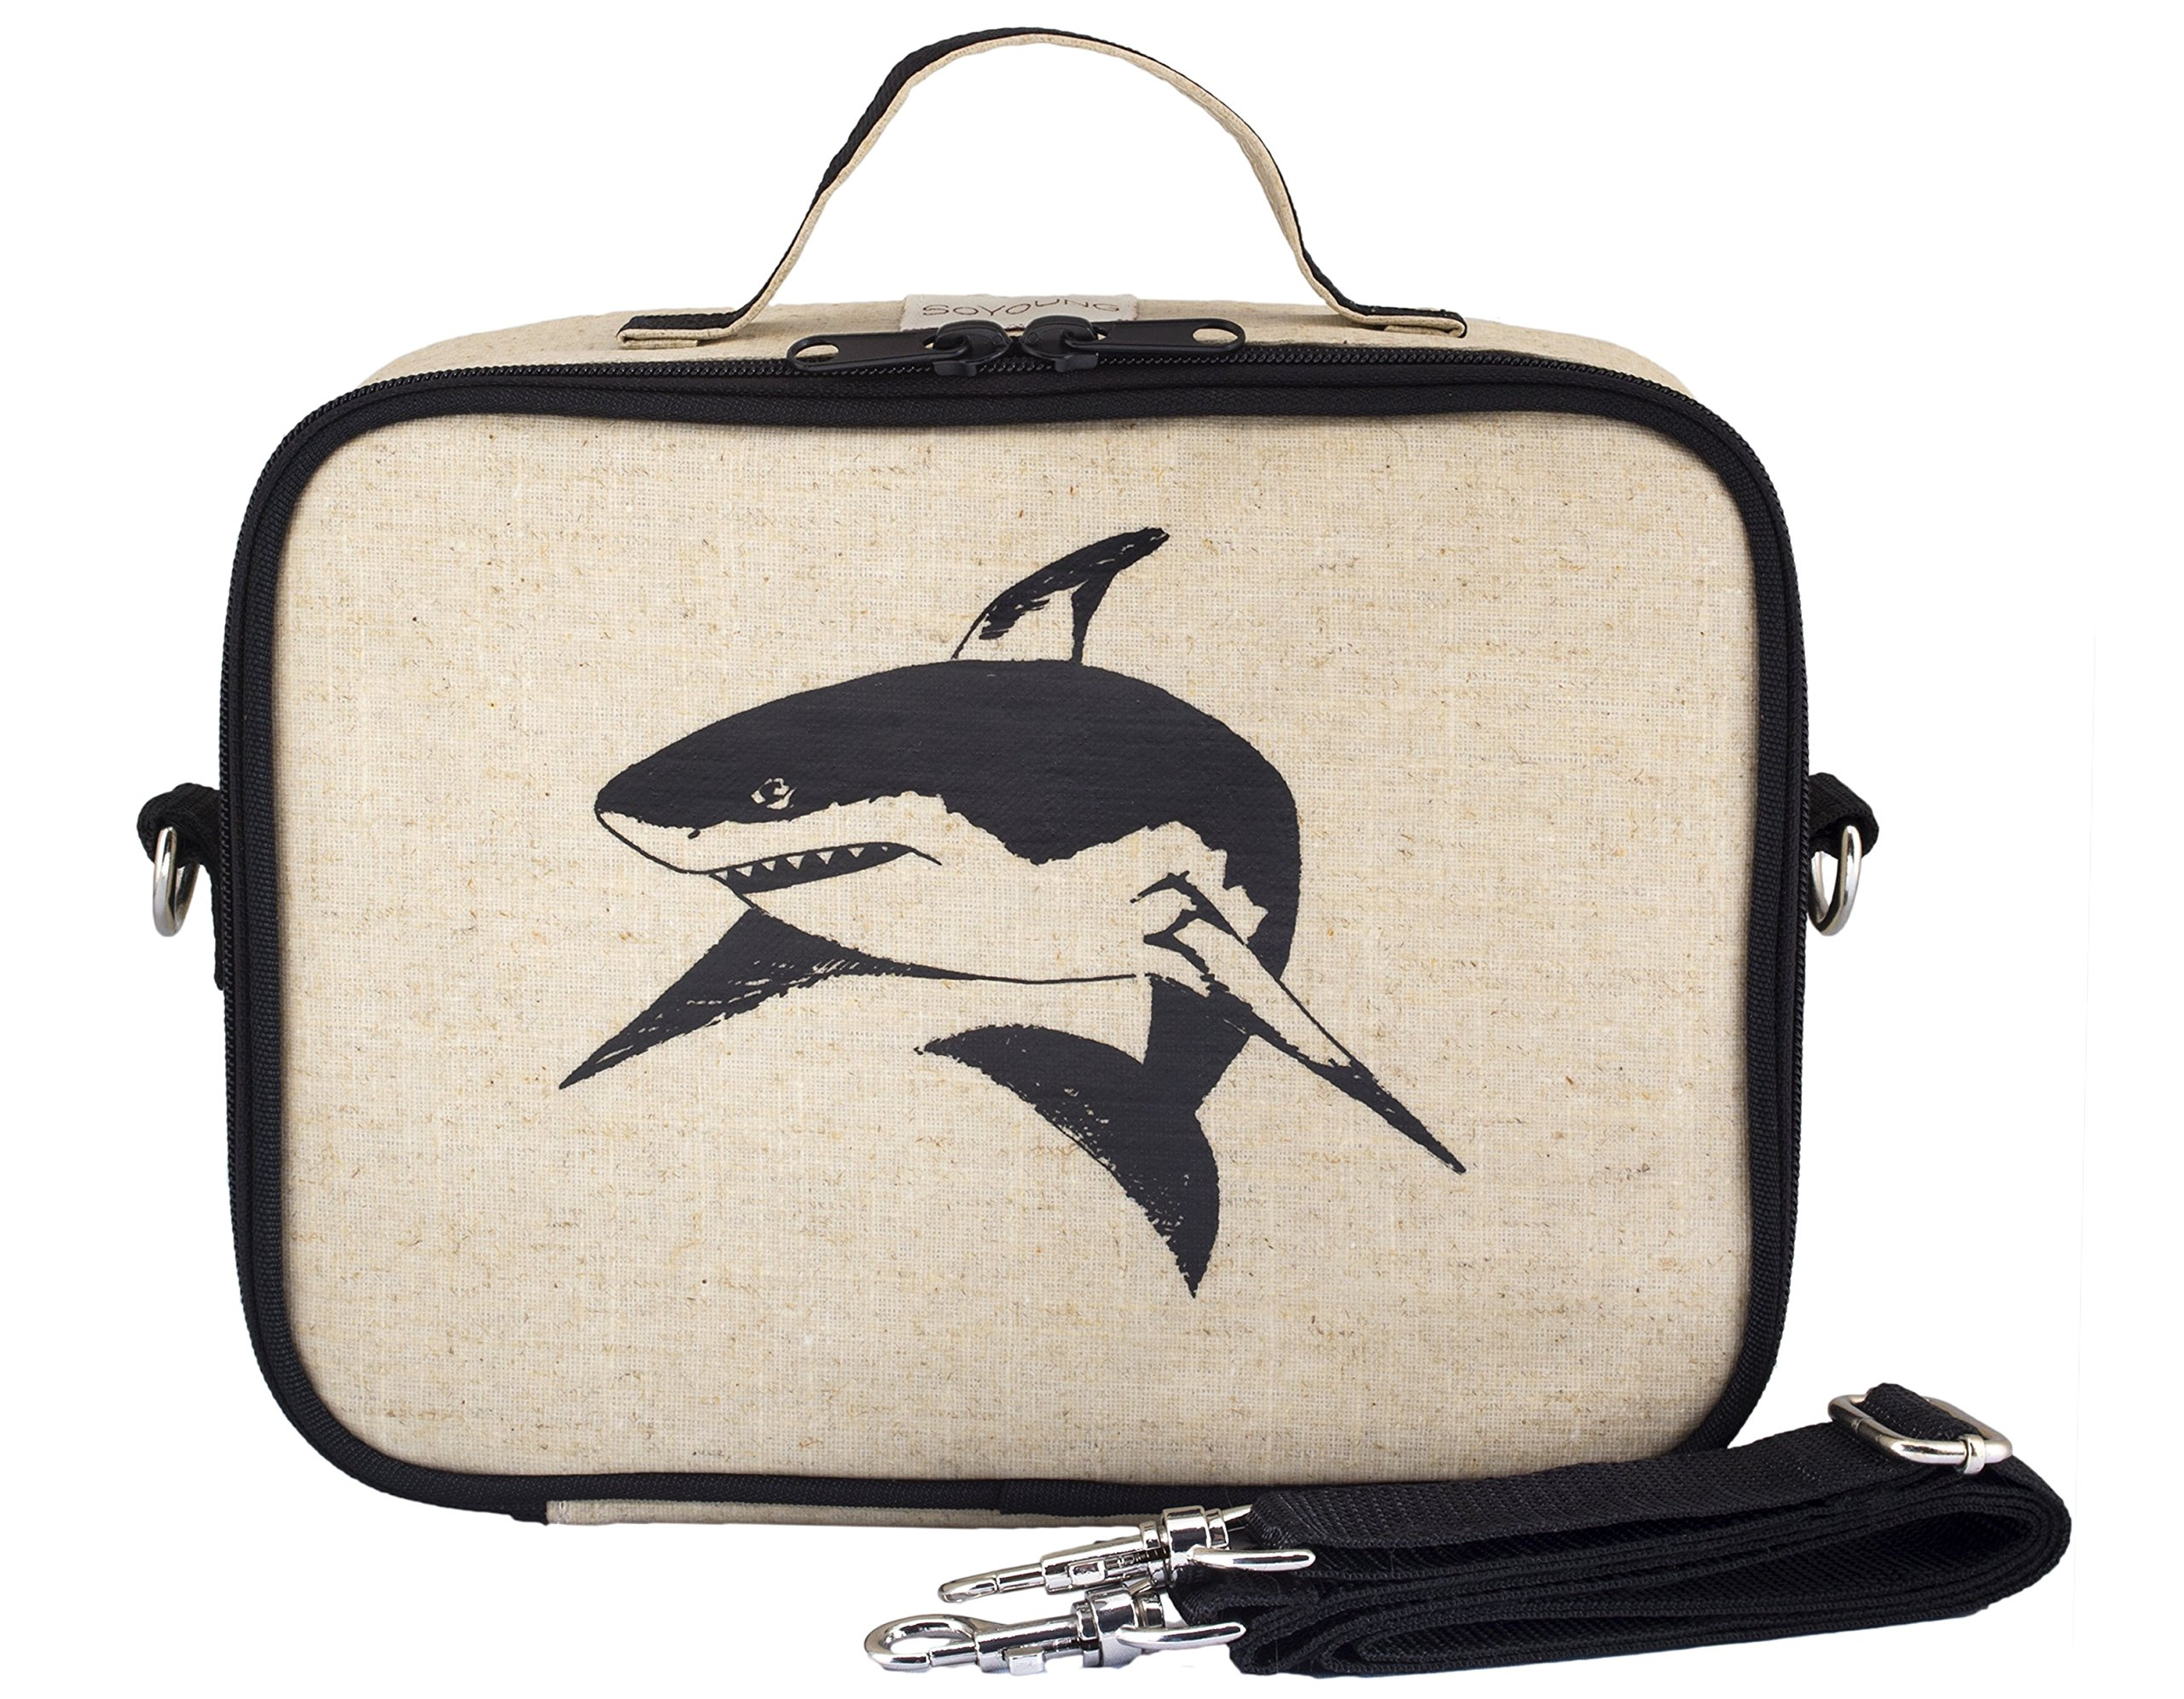 SoYoung Lunch Bag - Raw Linen, Eco-Friendly, Retro-Inspired, Leakproof, Easy to Clean - Black Shark